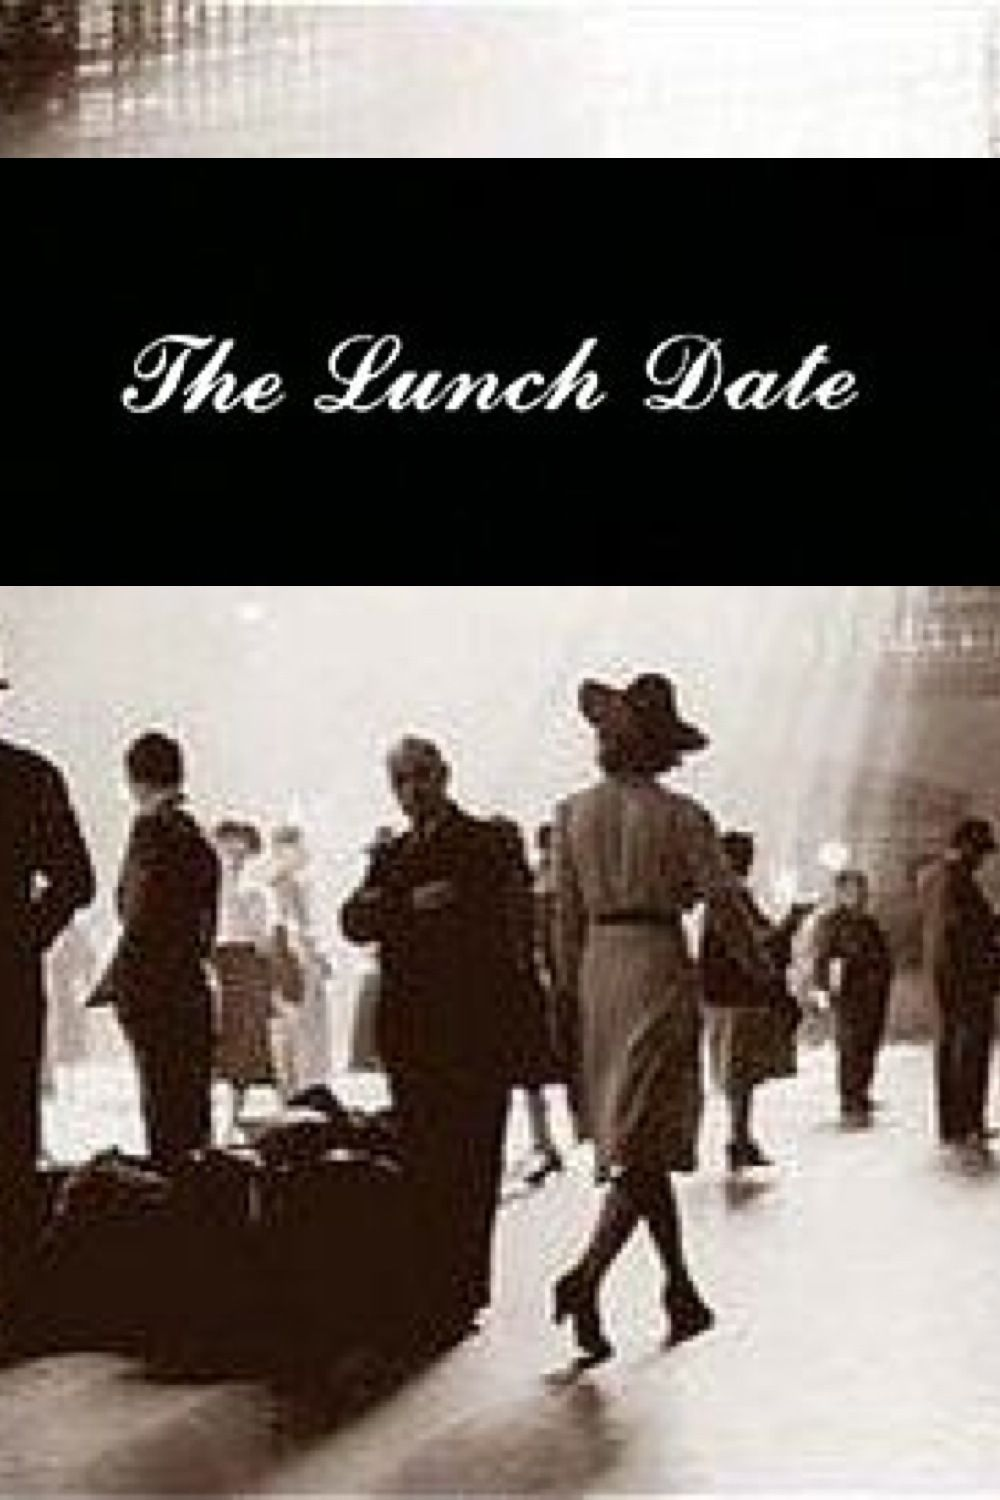 film analysis of the lunch date A lunch date with the director at the restaurant featured in the film where annabel gets dumped (london based), a personal thank you video from annabel, wilbur and.